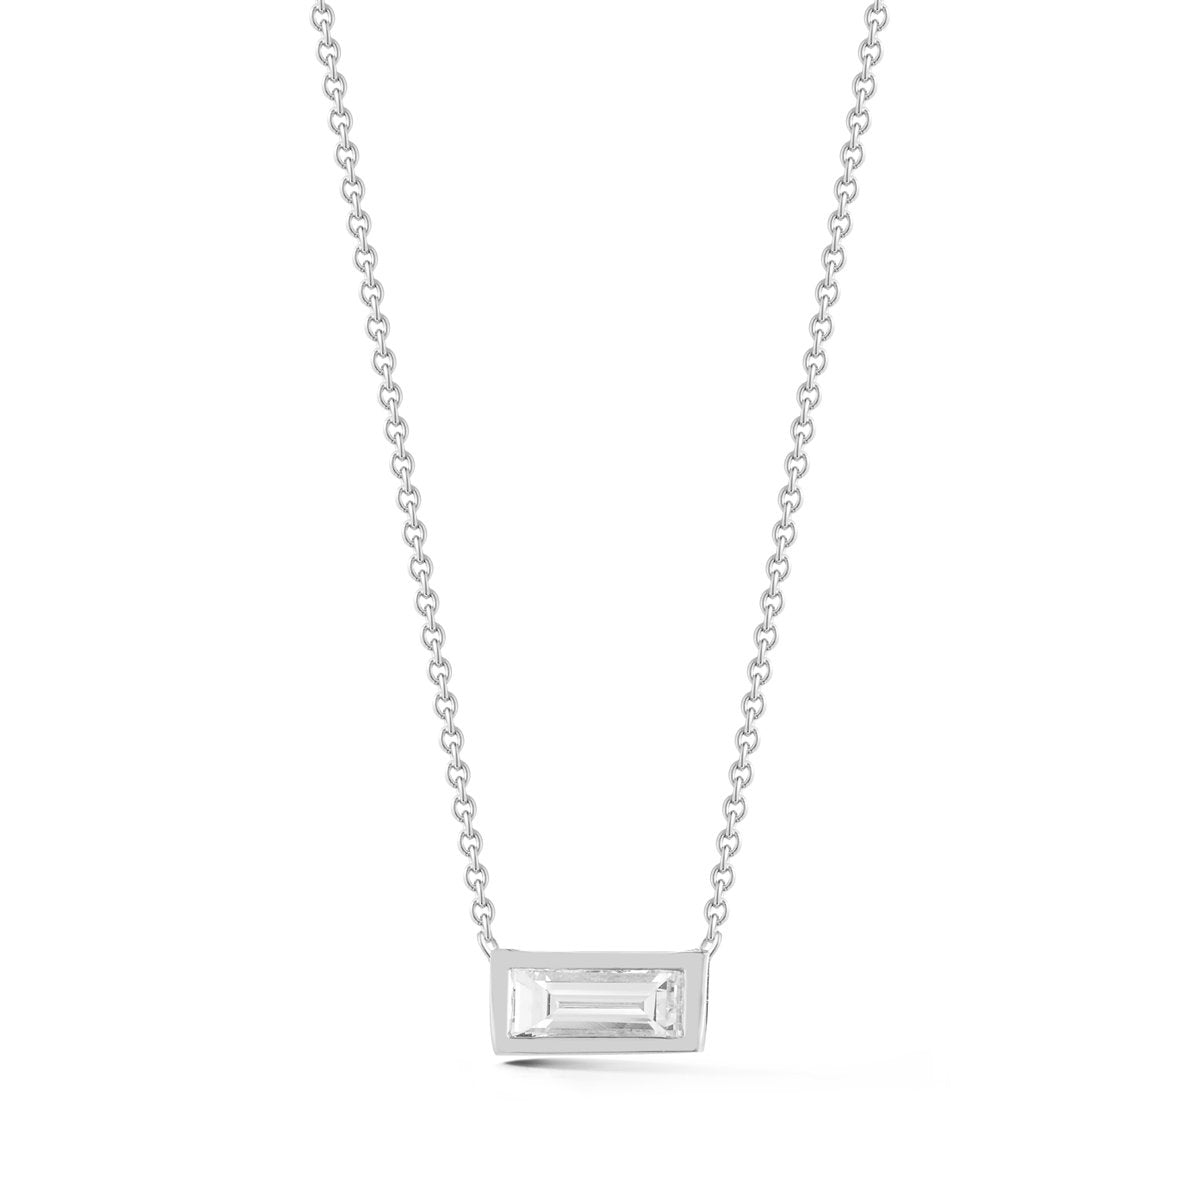 Small Baguette Diamond Necklace - STONE AND STRAND